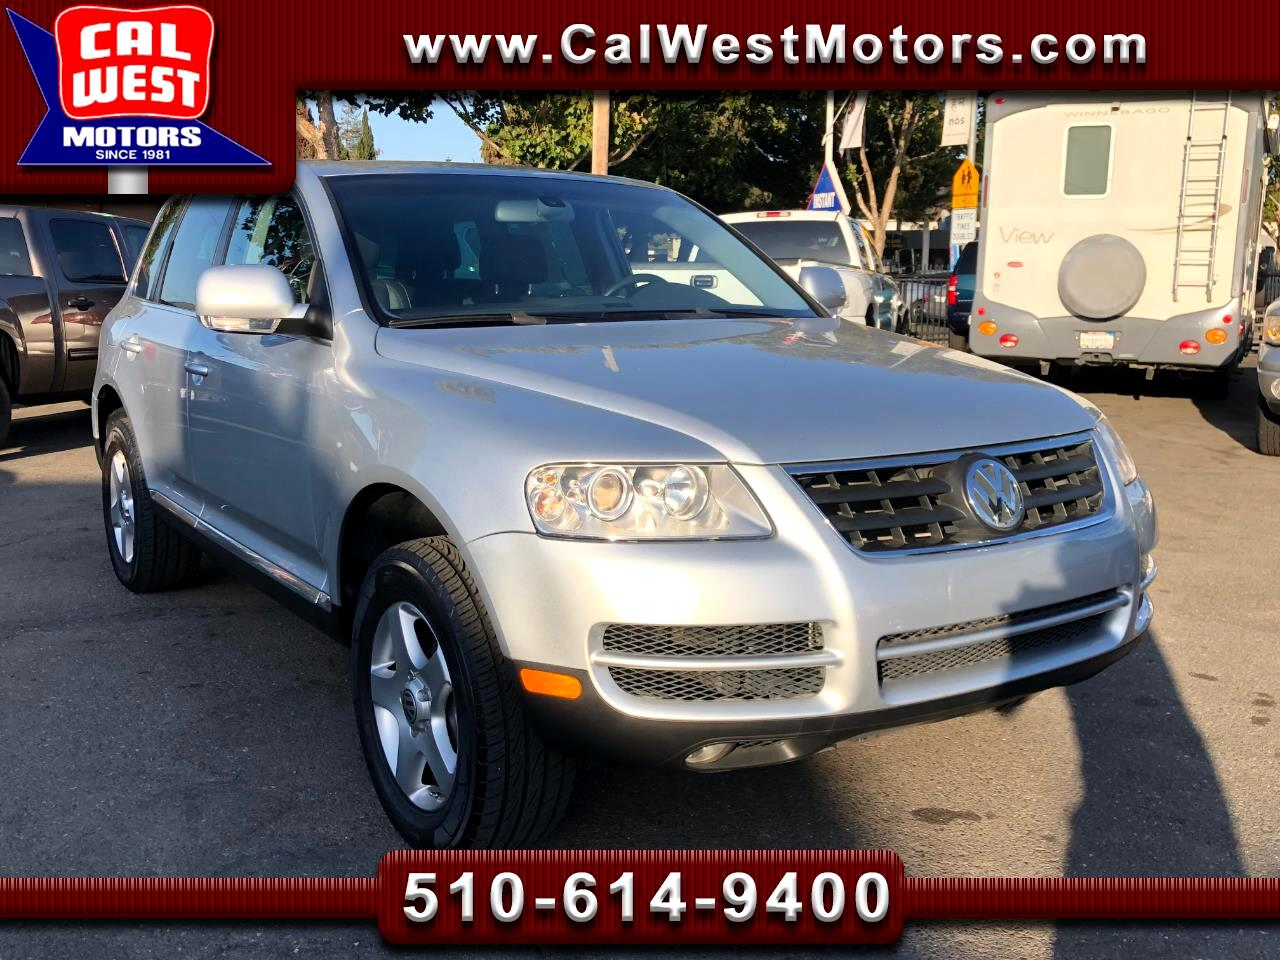 2005 Volkswagen Touareg 4WD V6 SUV Leather 1Owner GreatMtnce SuprClean